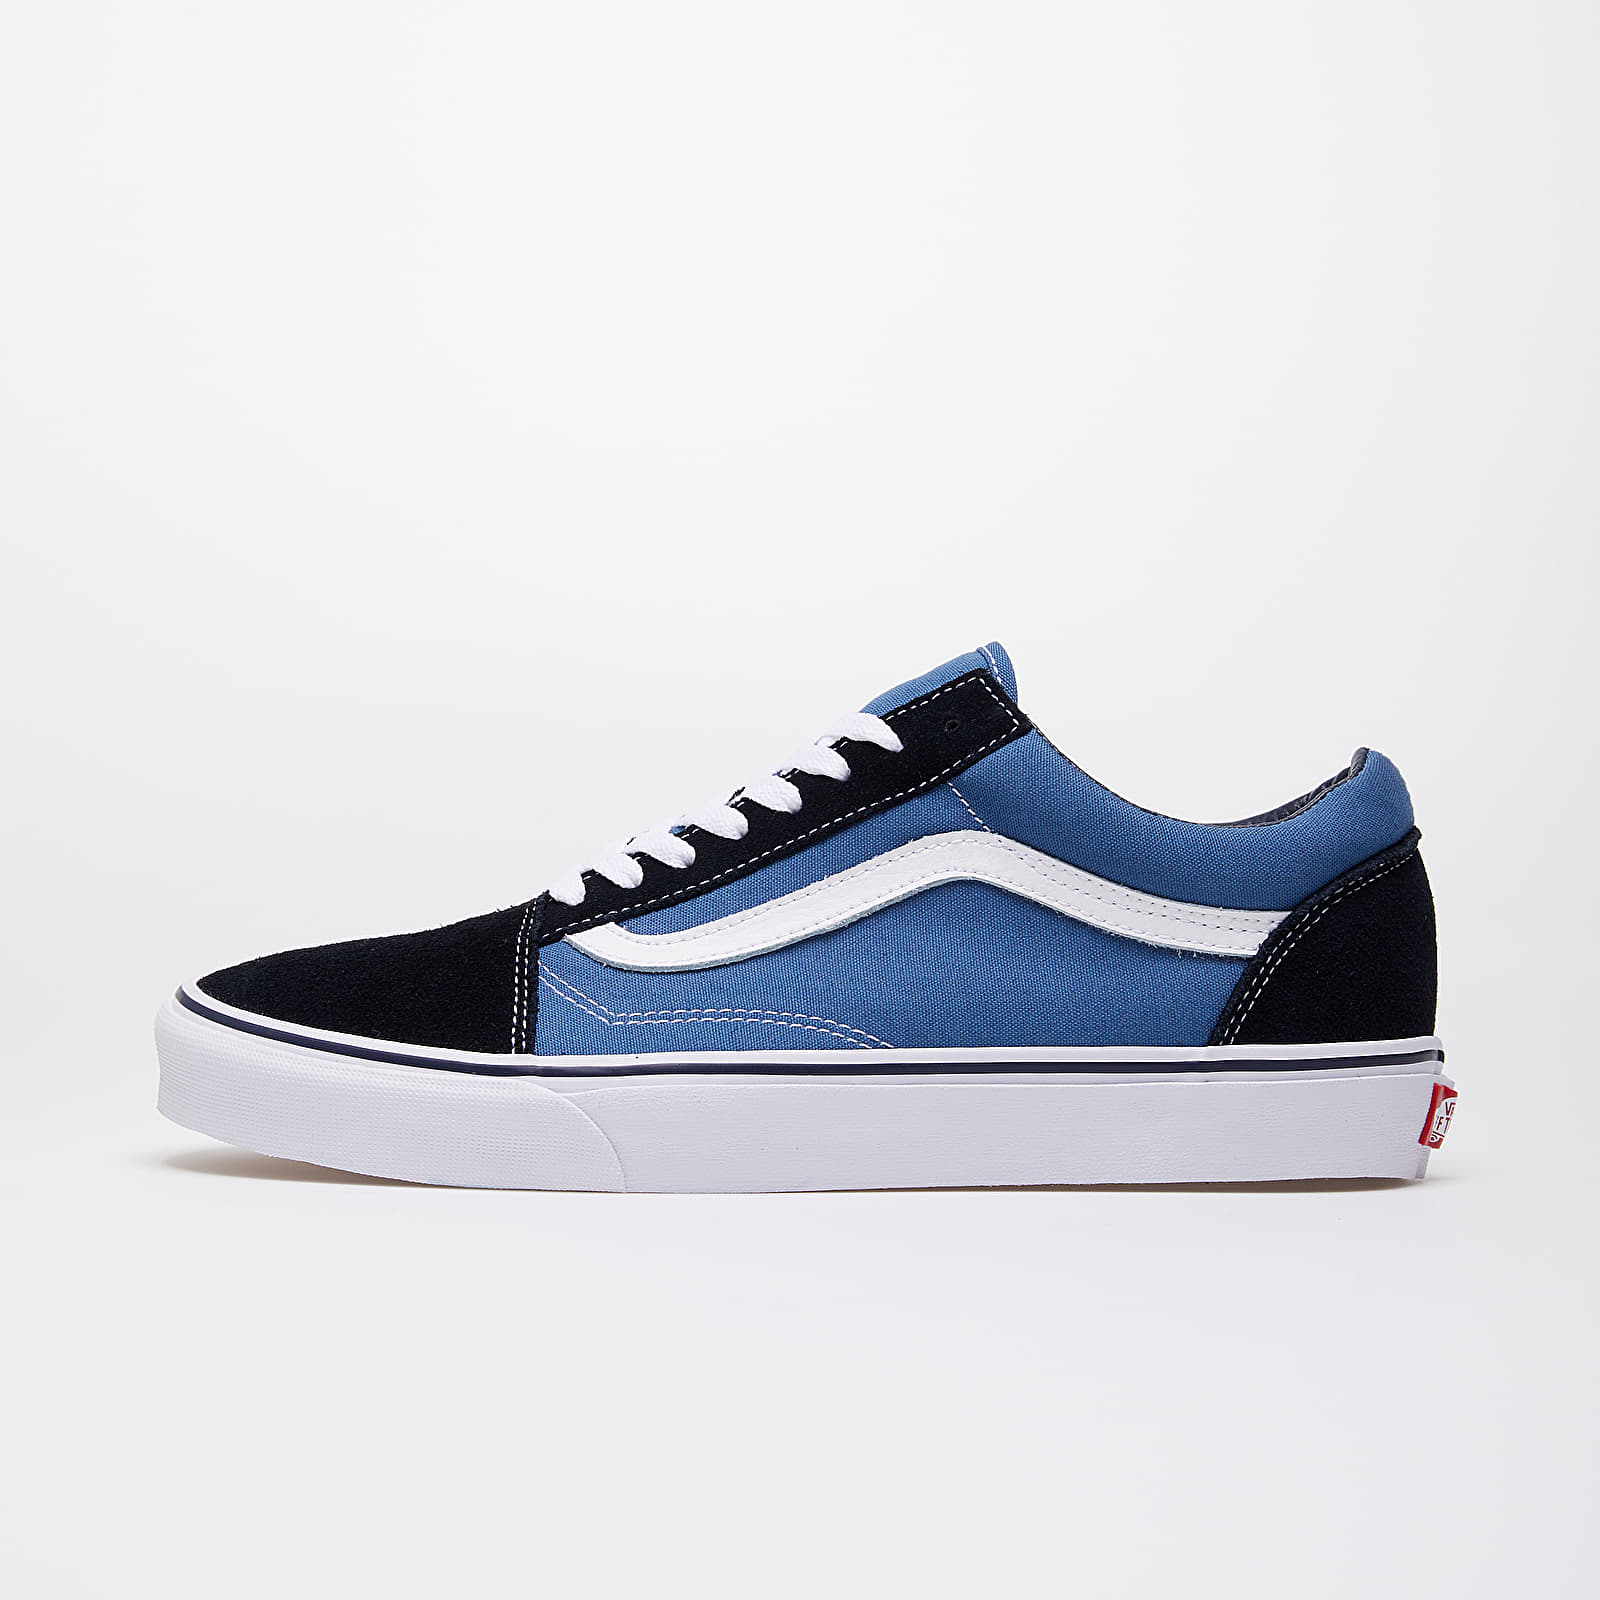 Men's shoes Vans Old Skool Navy